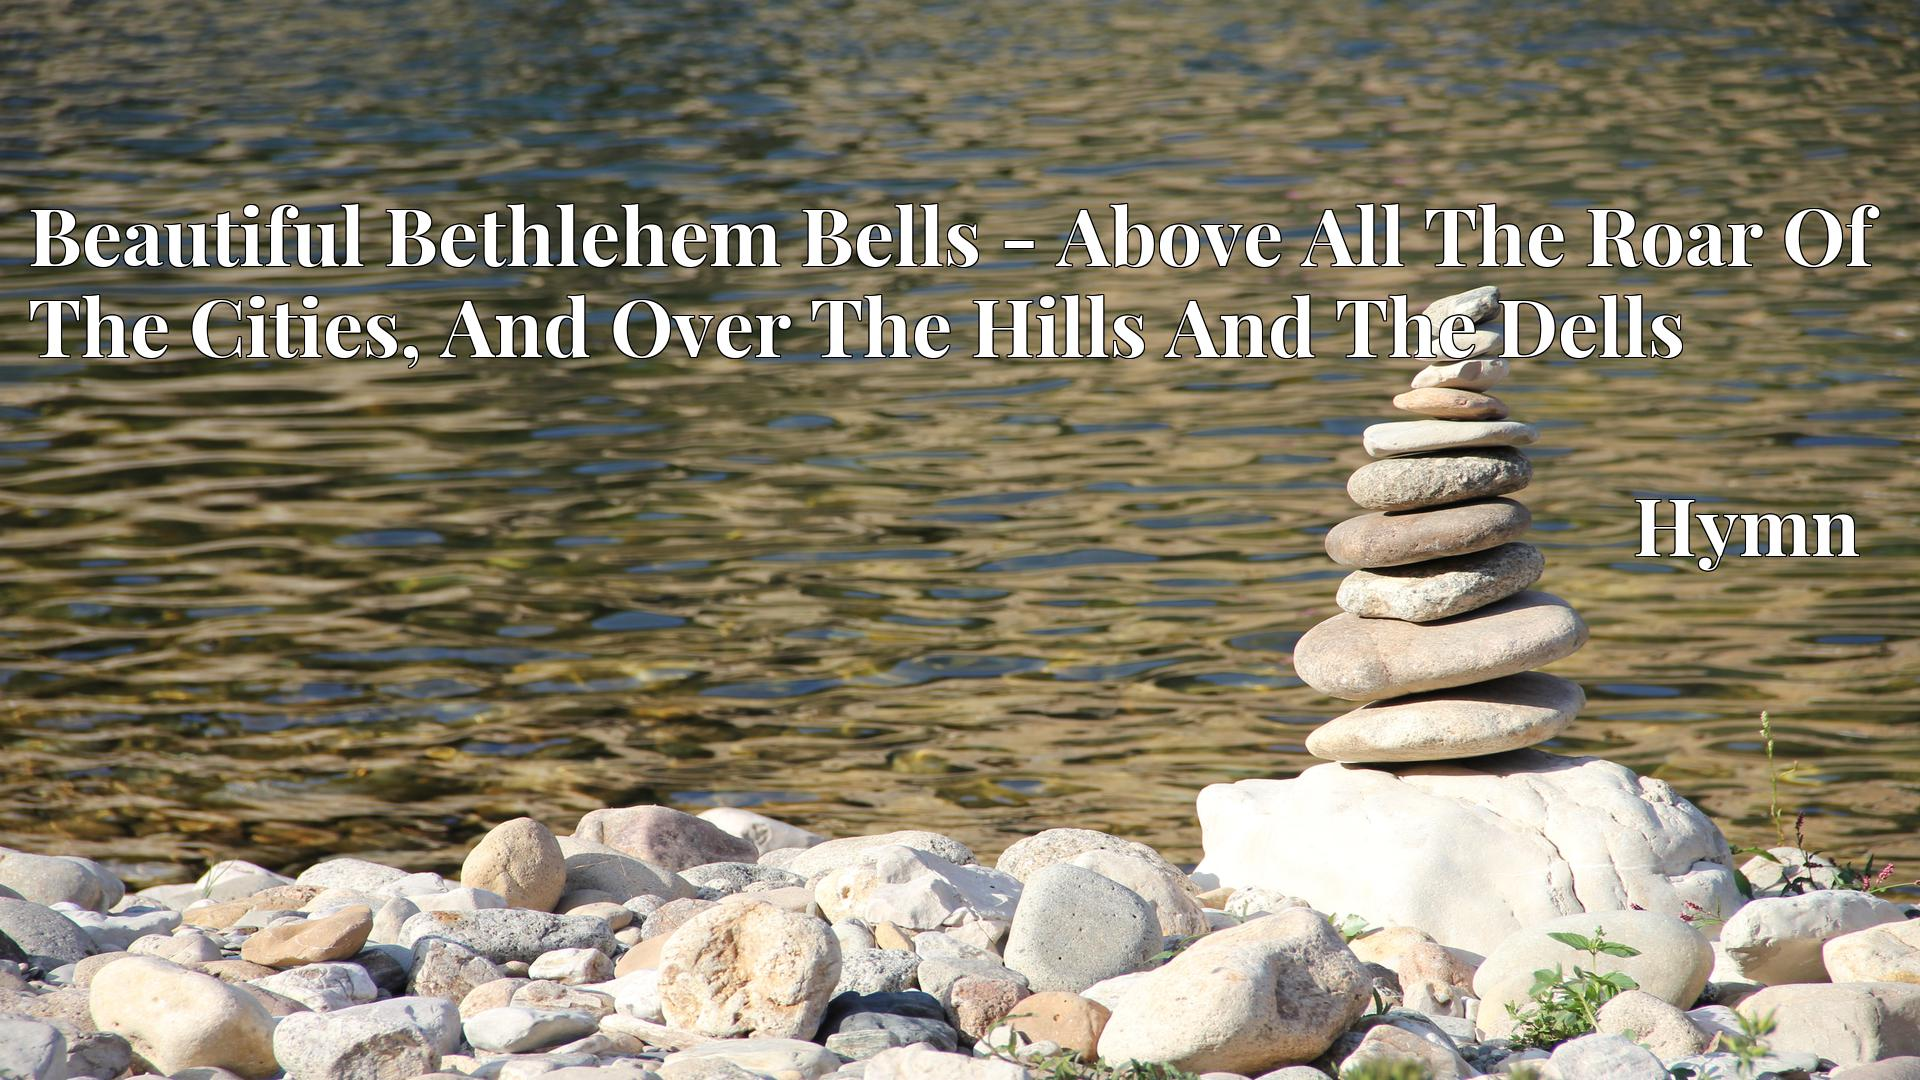 Beautiful Bethlehem Bells - Above All The Roar Of The Cities, And Over The Hills And The Dells - Hymn